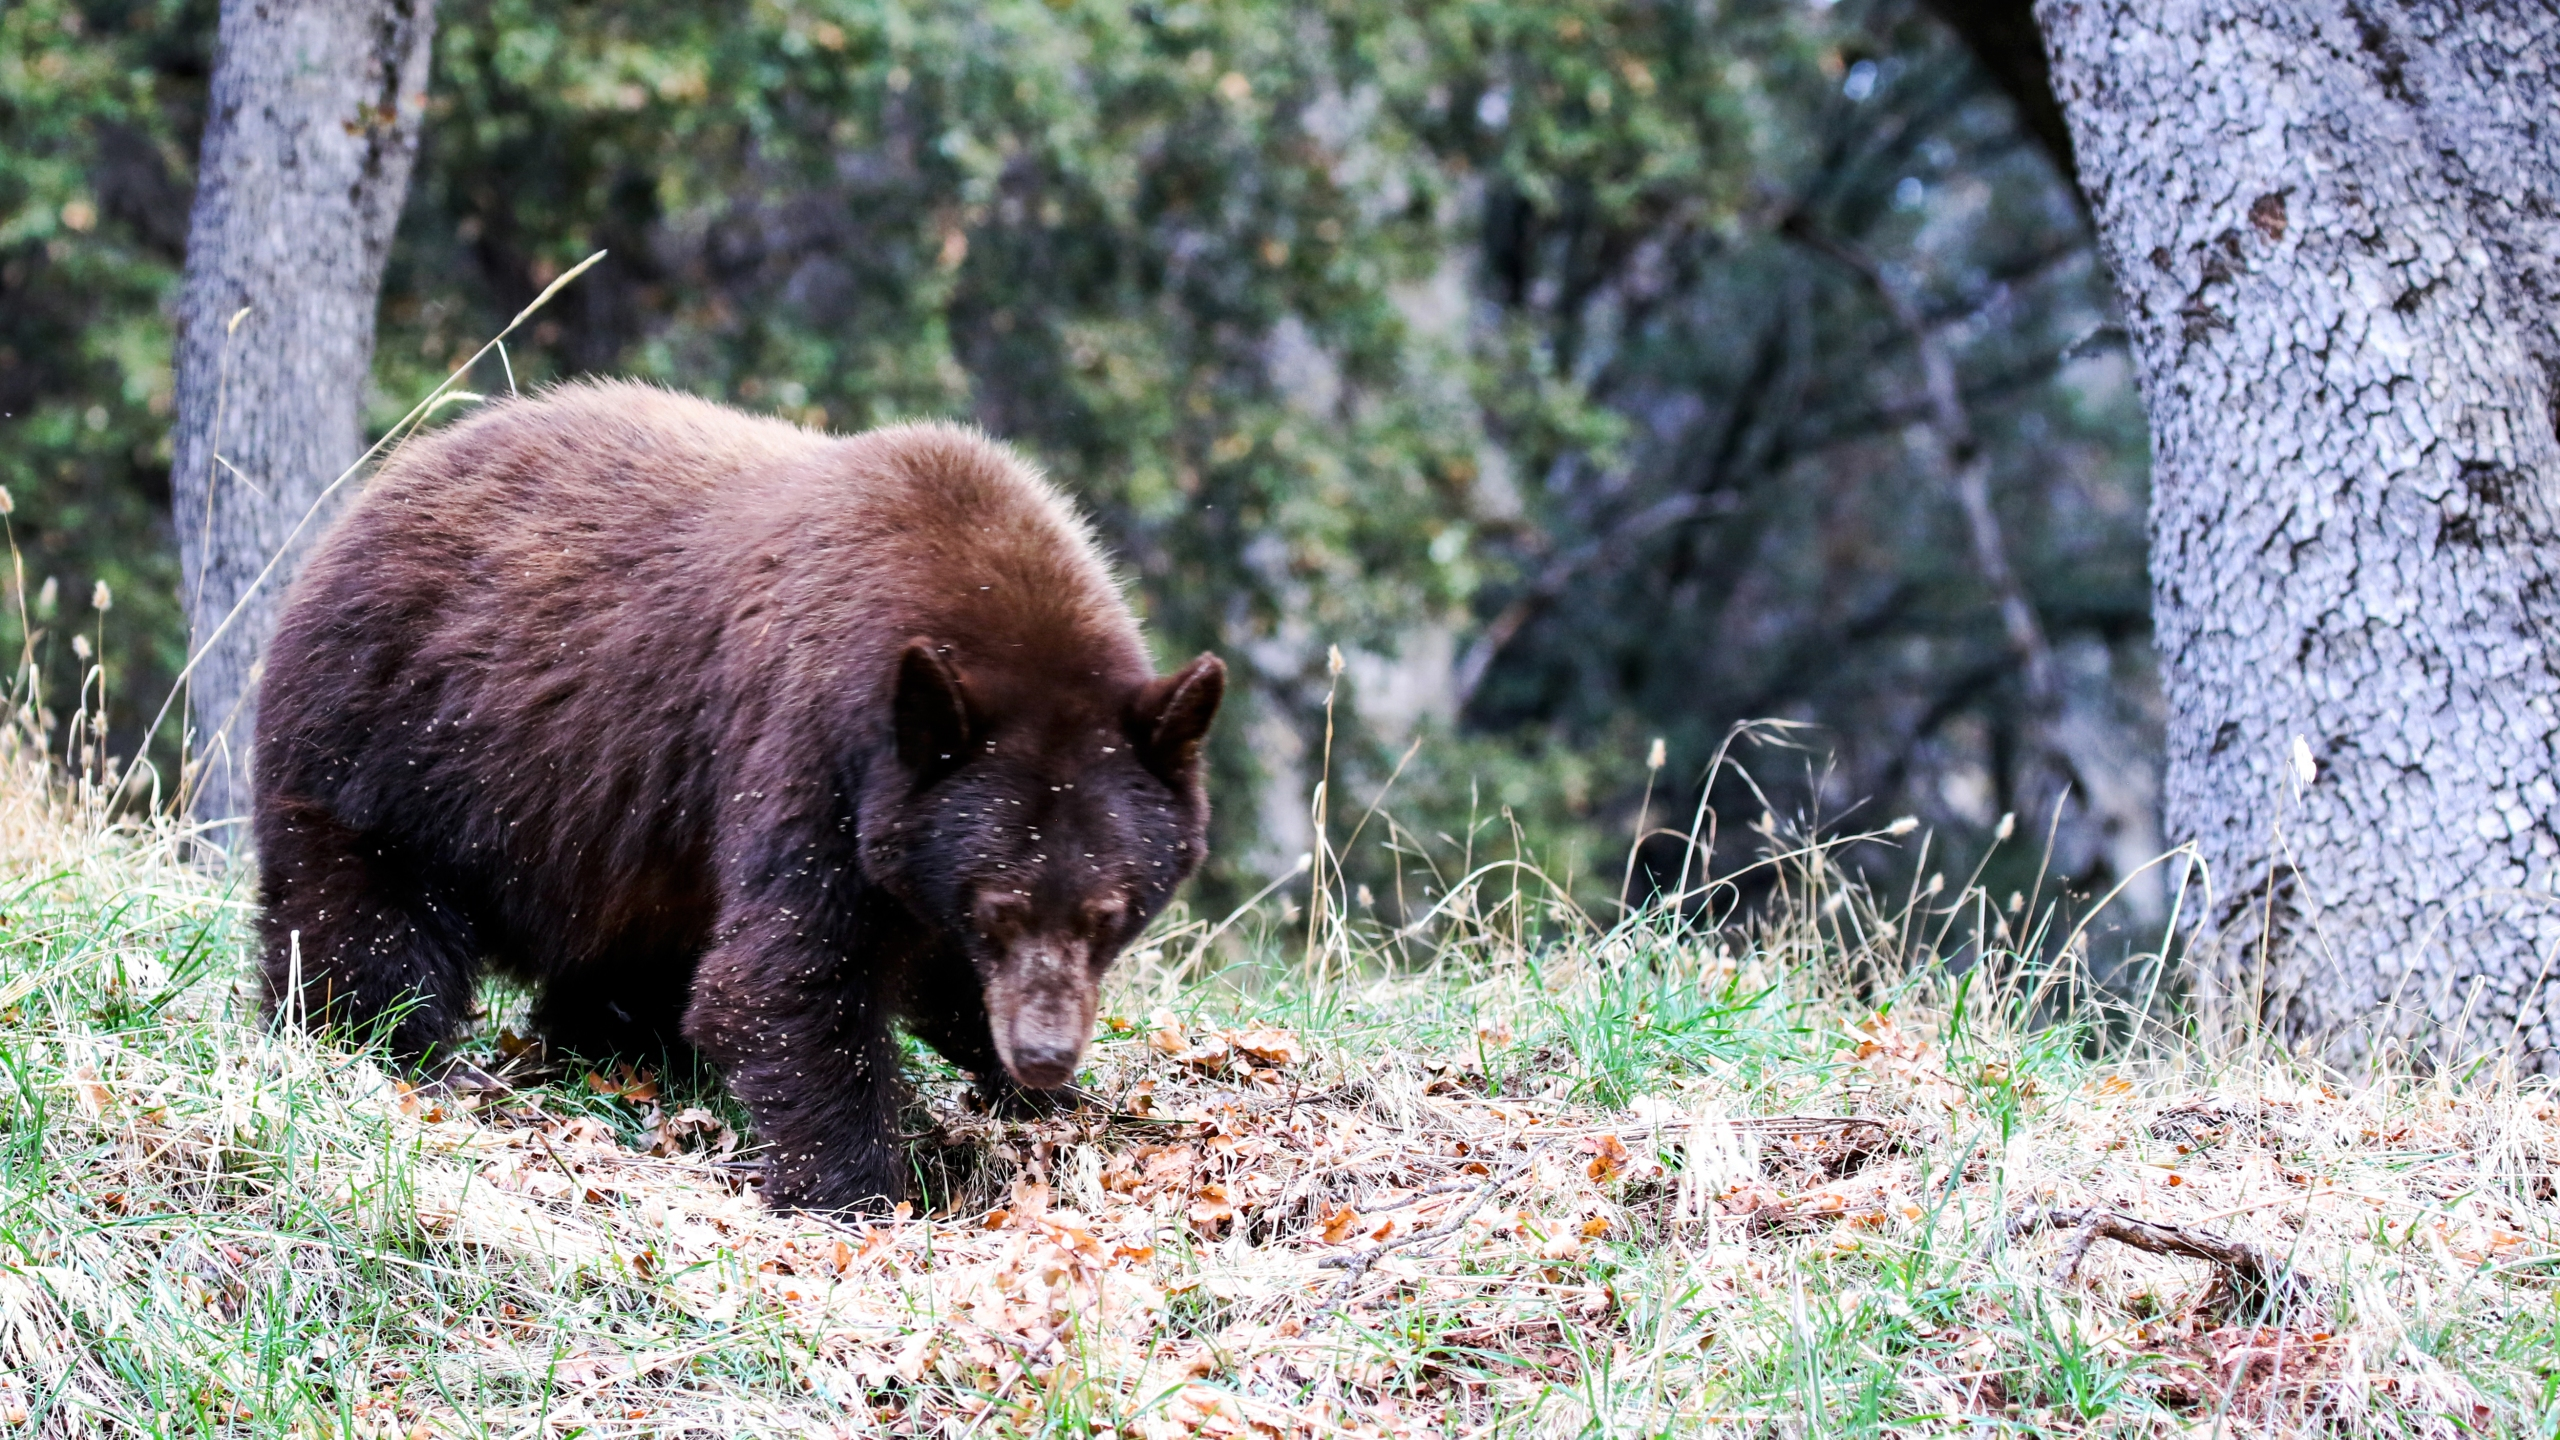 A bear is seen at Sequoia National Park in this undated file photo. (Getty Images)